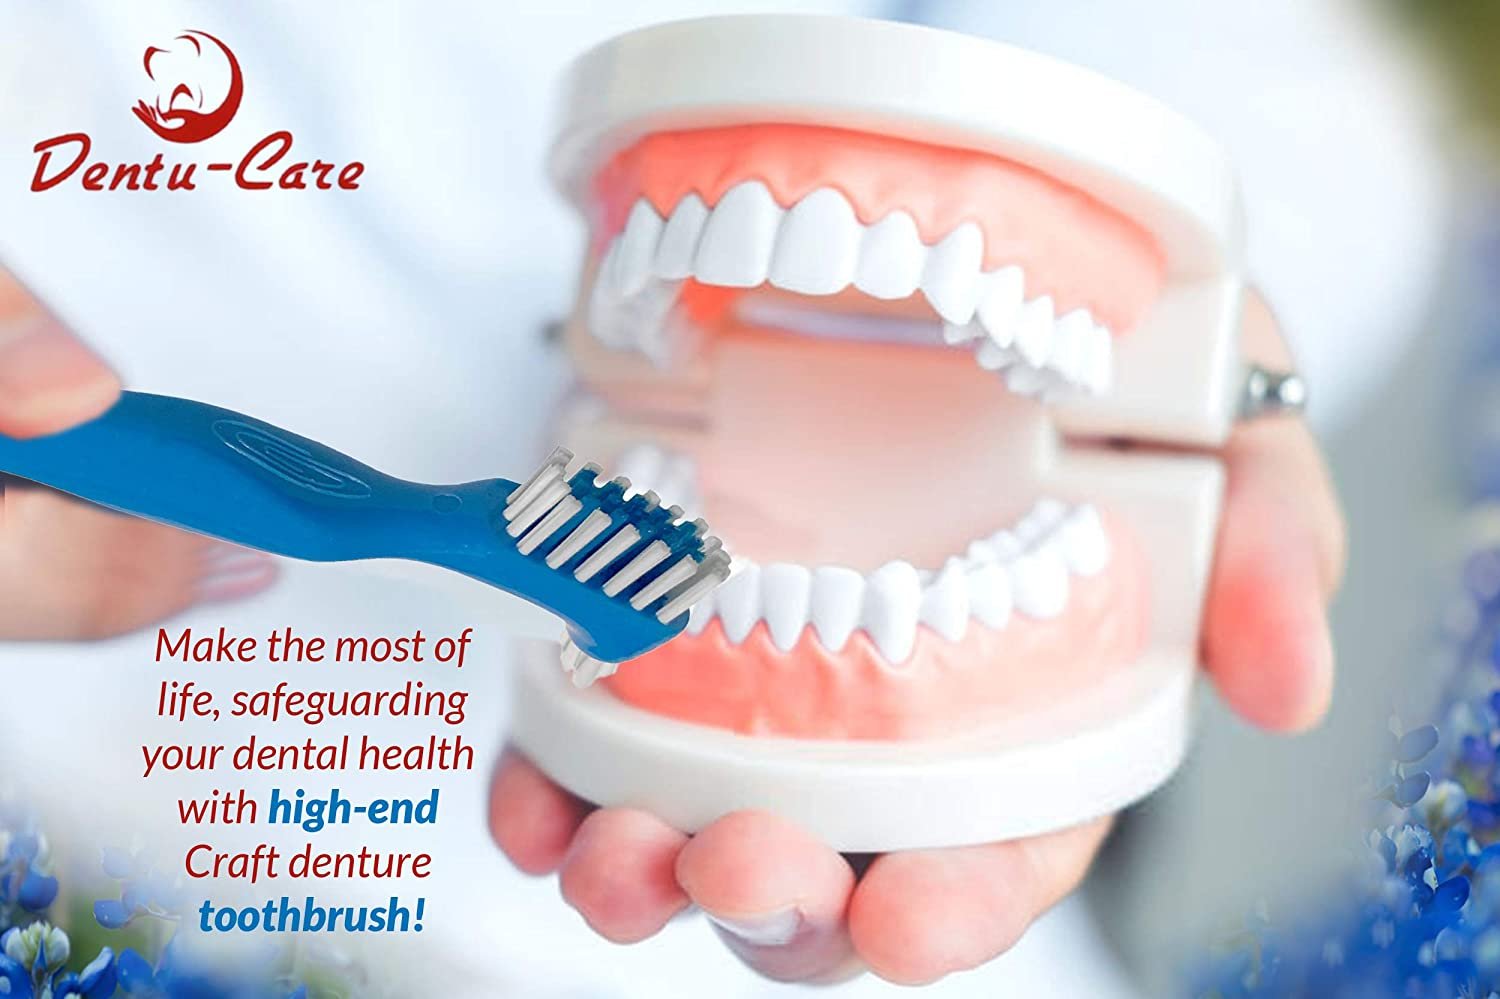 Dentu-Care Denture Case with 2 Denture Cleaning Brushes, Retainer Case with Lid and Draining Basket for Cleaning and Storing: Health & Personal Care